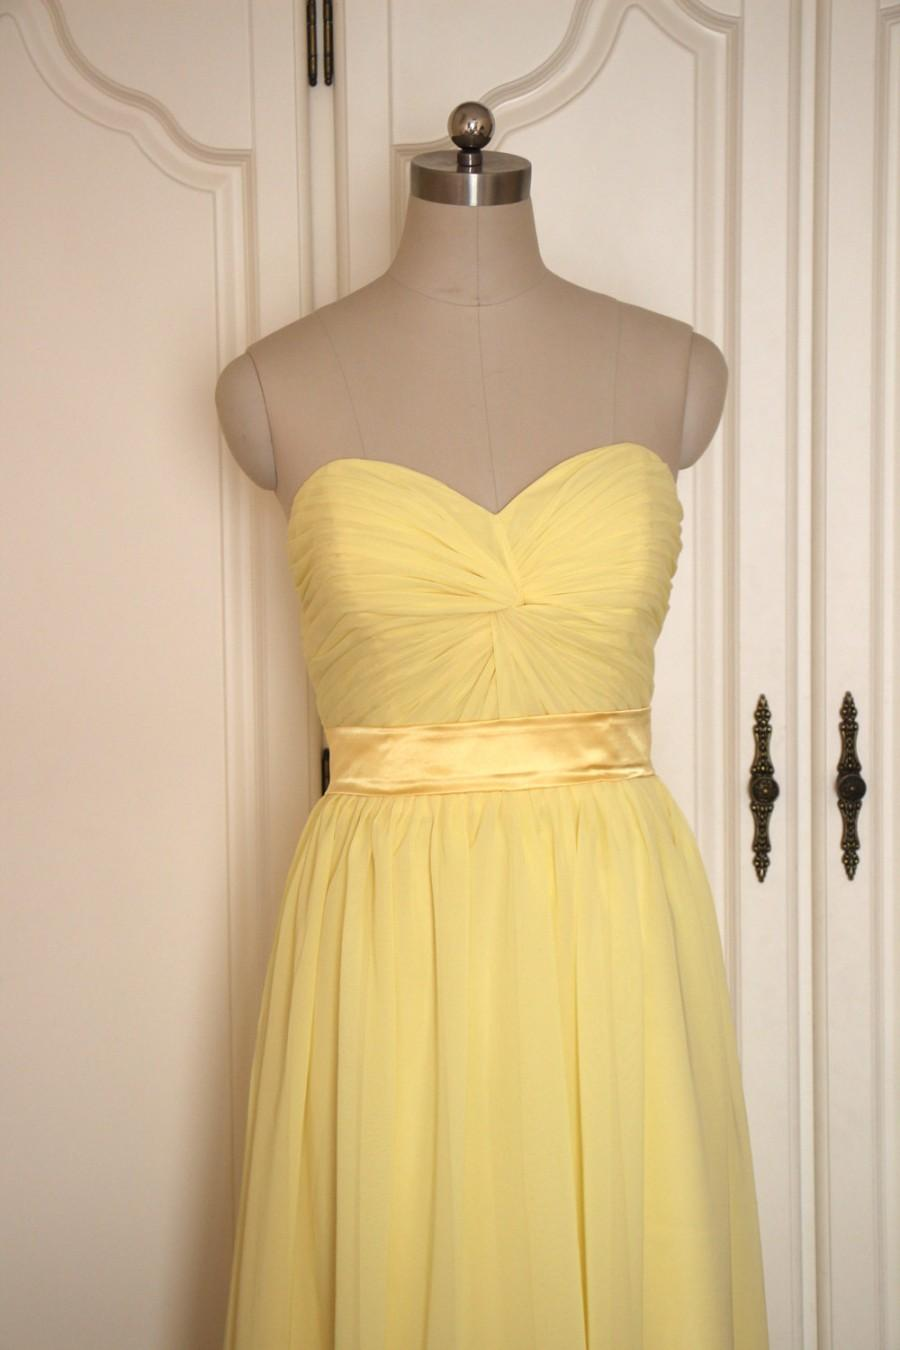 Düğün - Yellow Sweetheart Bridesmaid Dress Short/Floor Length Chiffon Yellow Strapless Bridesmaid Dress - Custom Dress